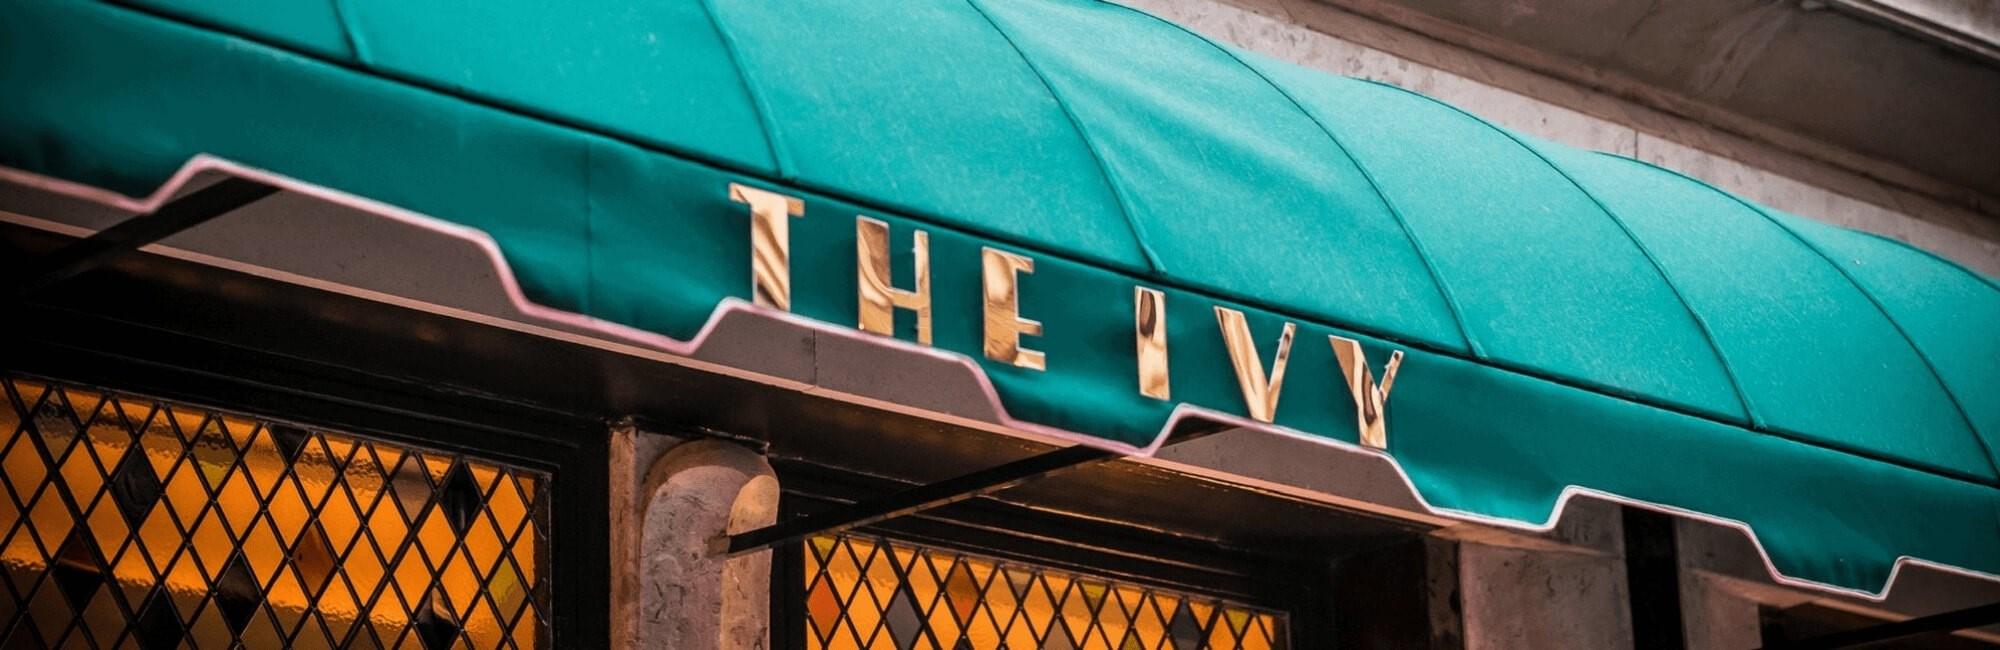 the ivy restaurant 5 1